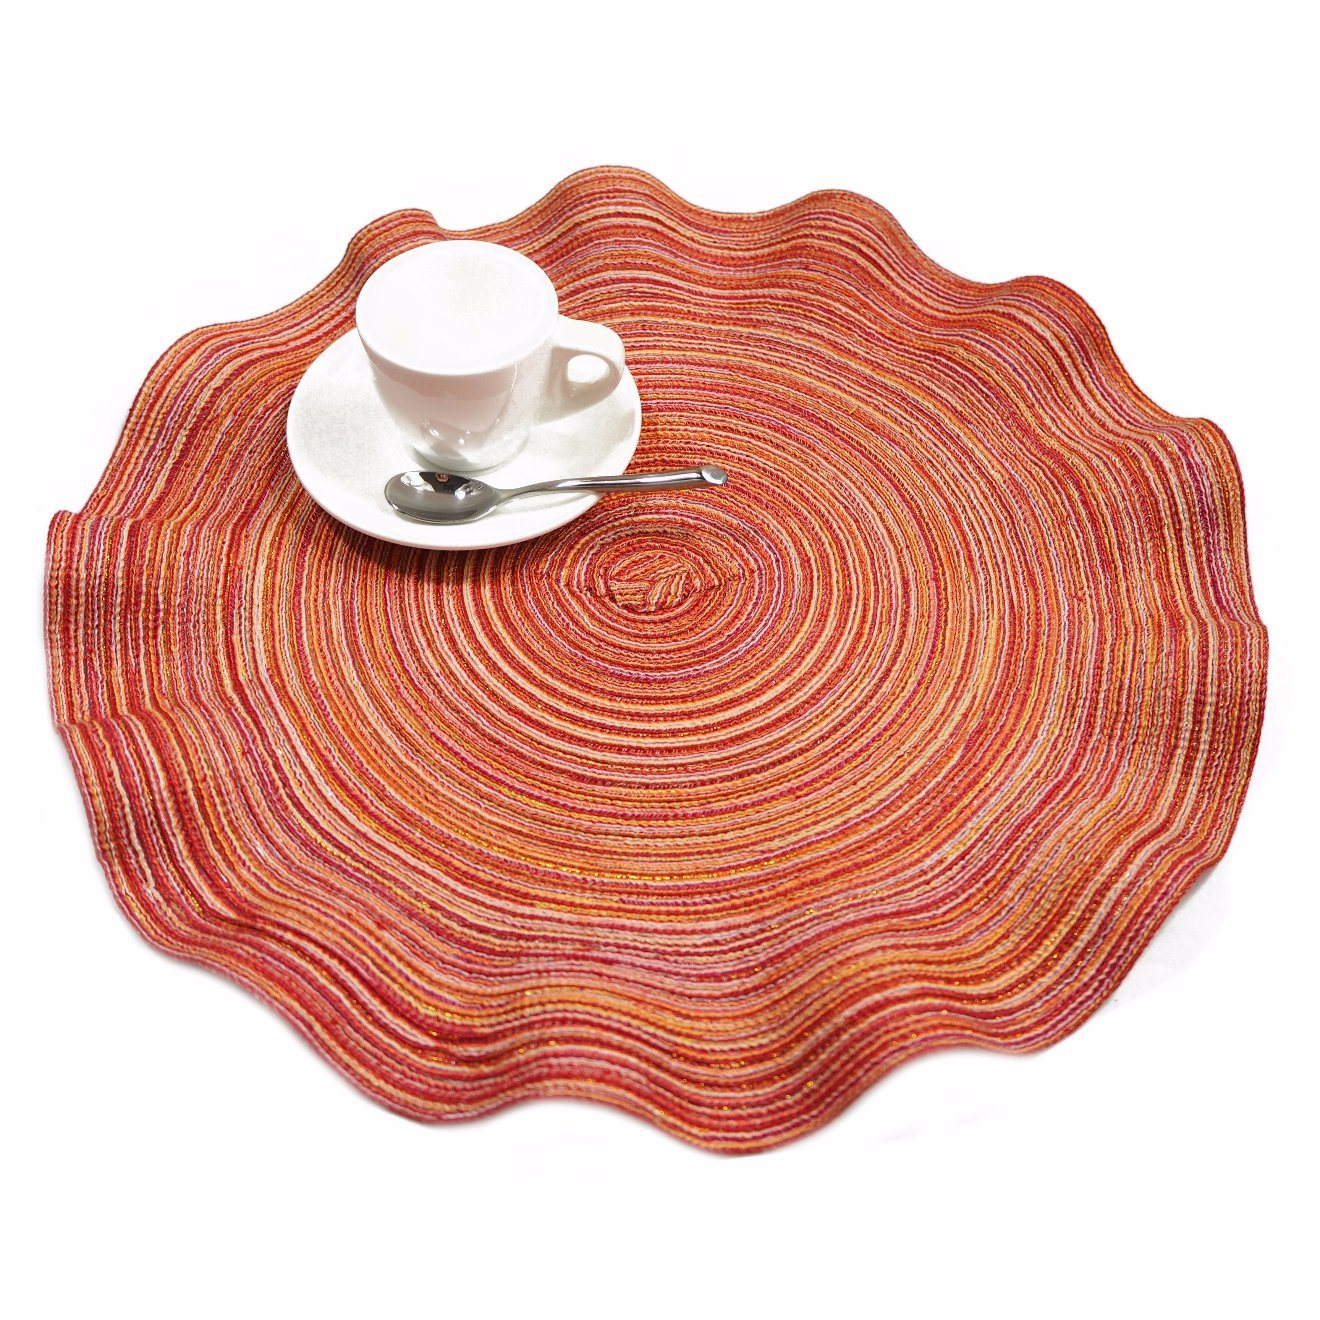 Wave 100% PP Woven Placemat for Tabletop & Kitchen